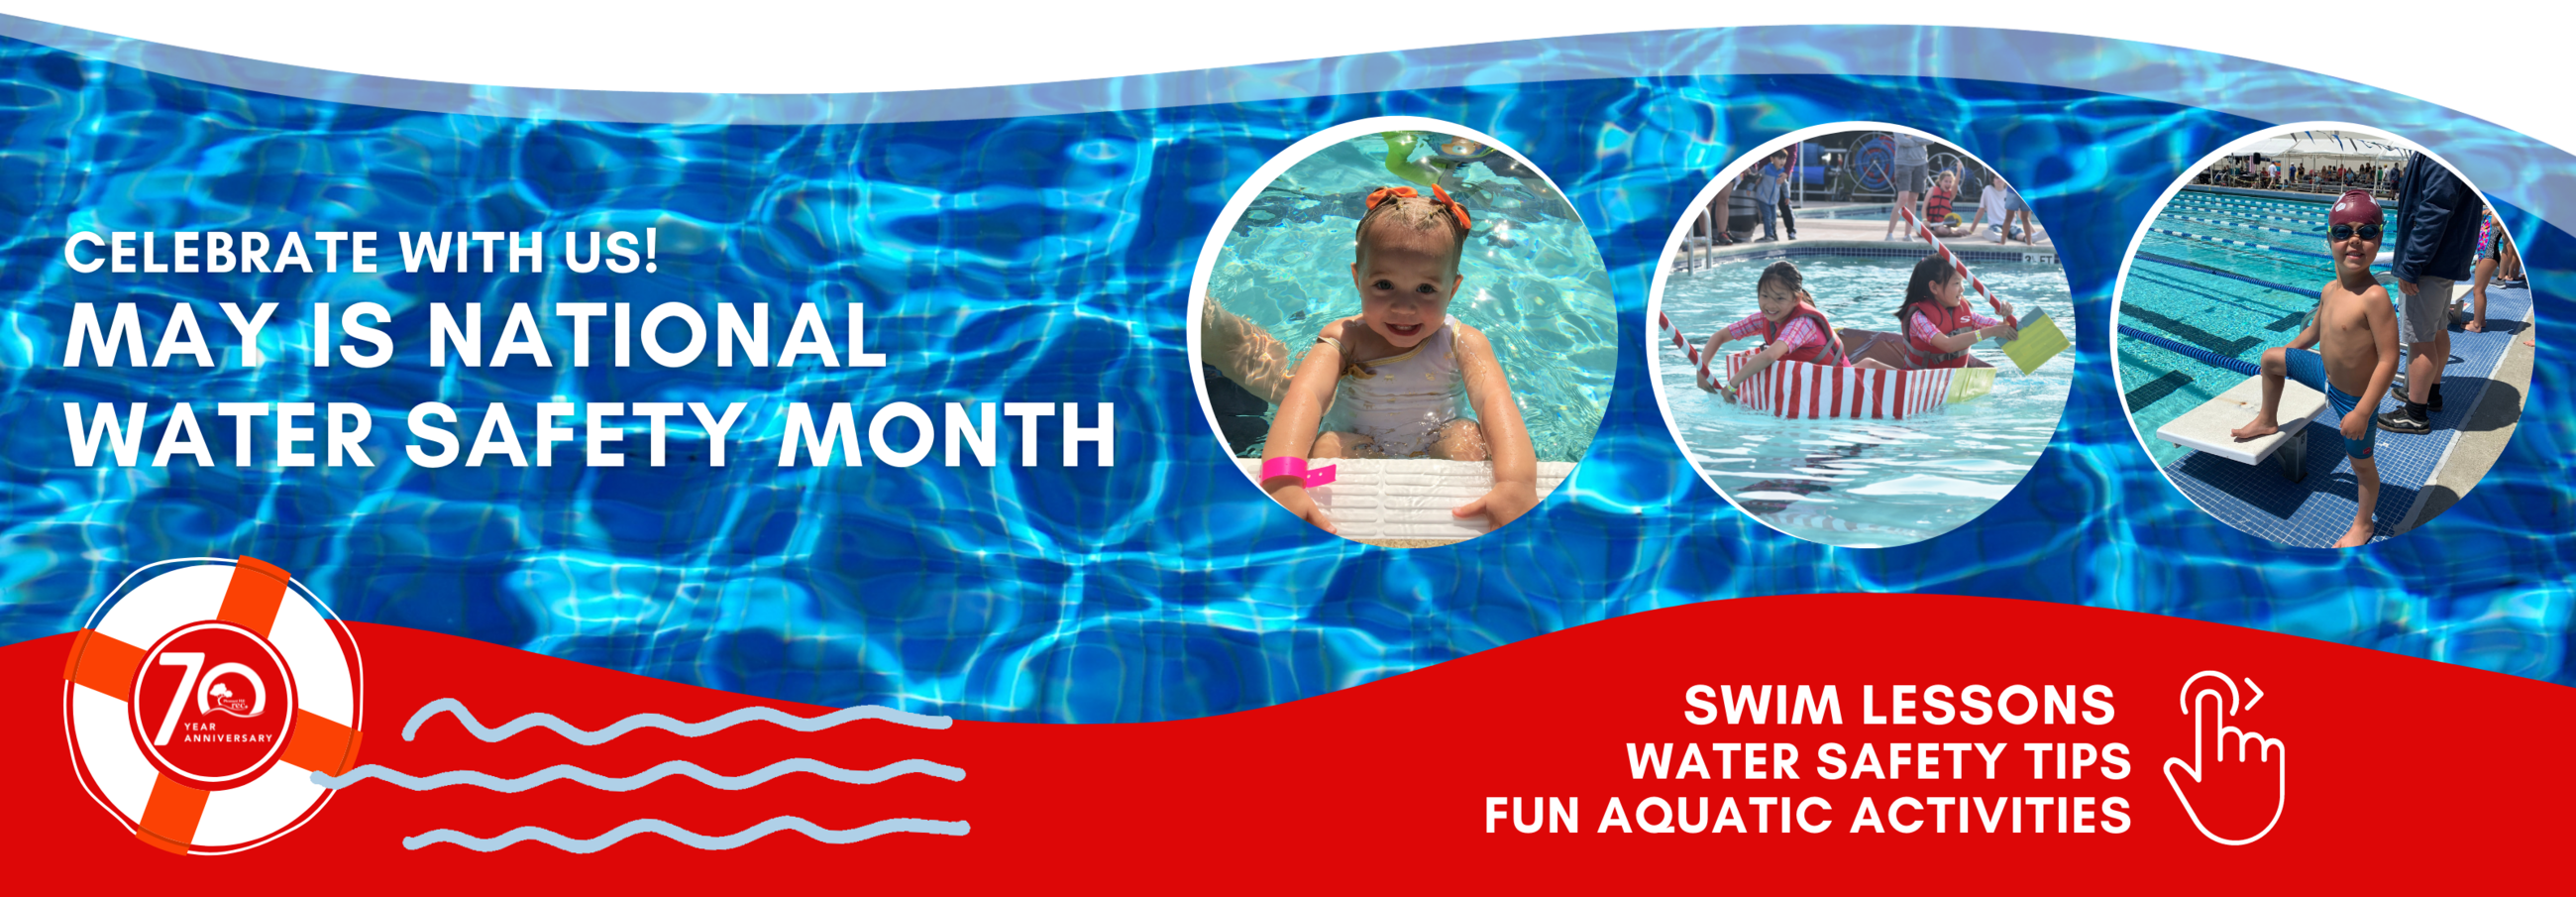 May Water Safety Month Banner